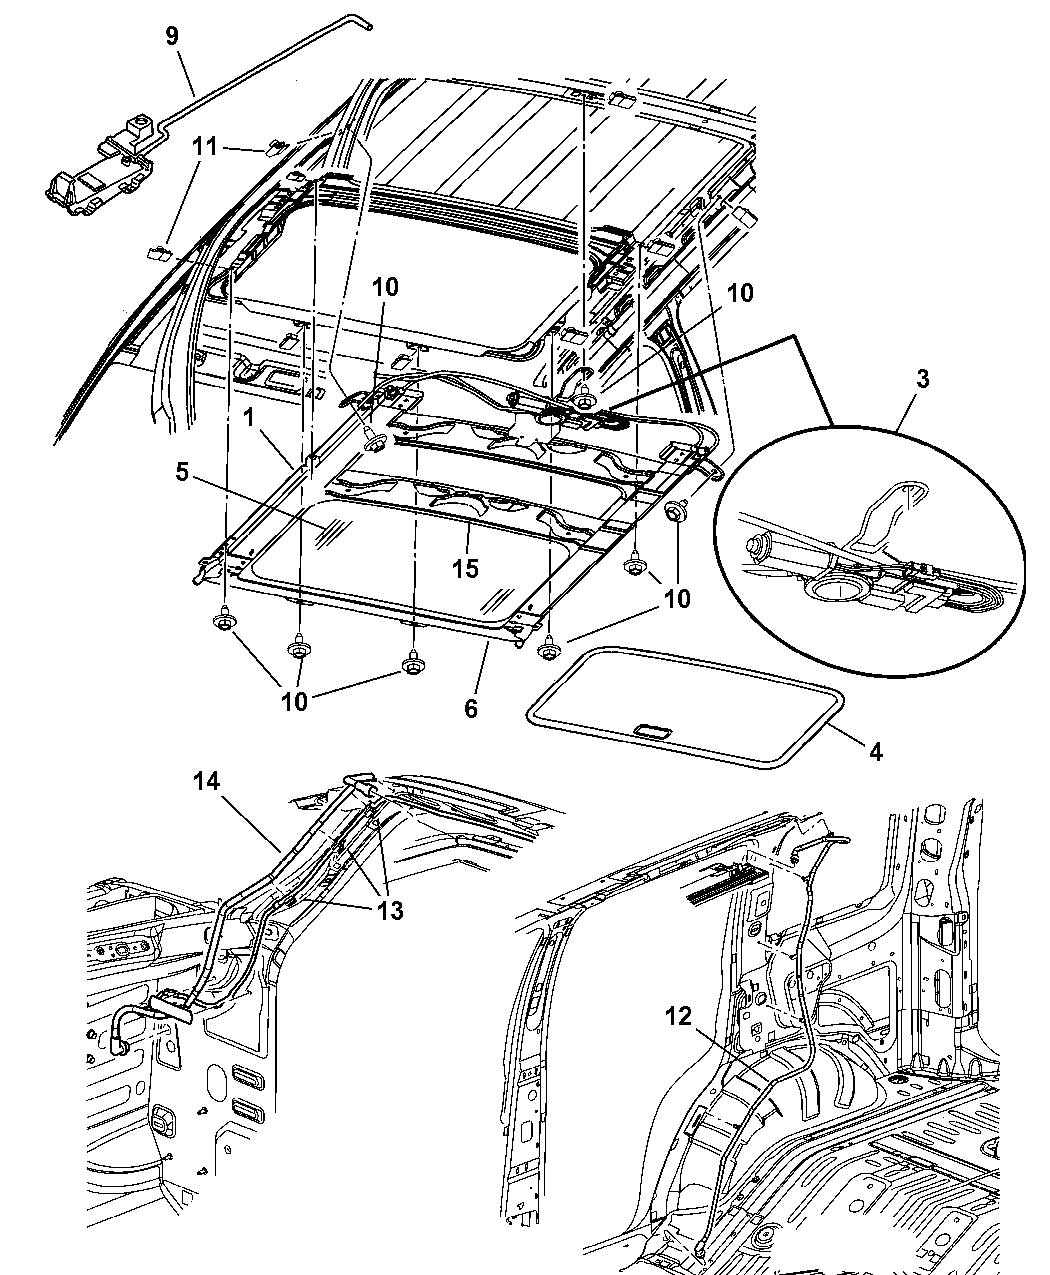 2004 Jeep Liberty Body Parts Diagram Electricity Site